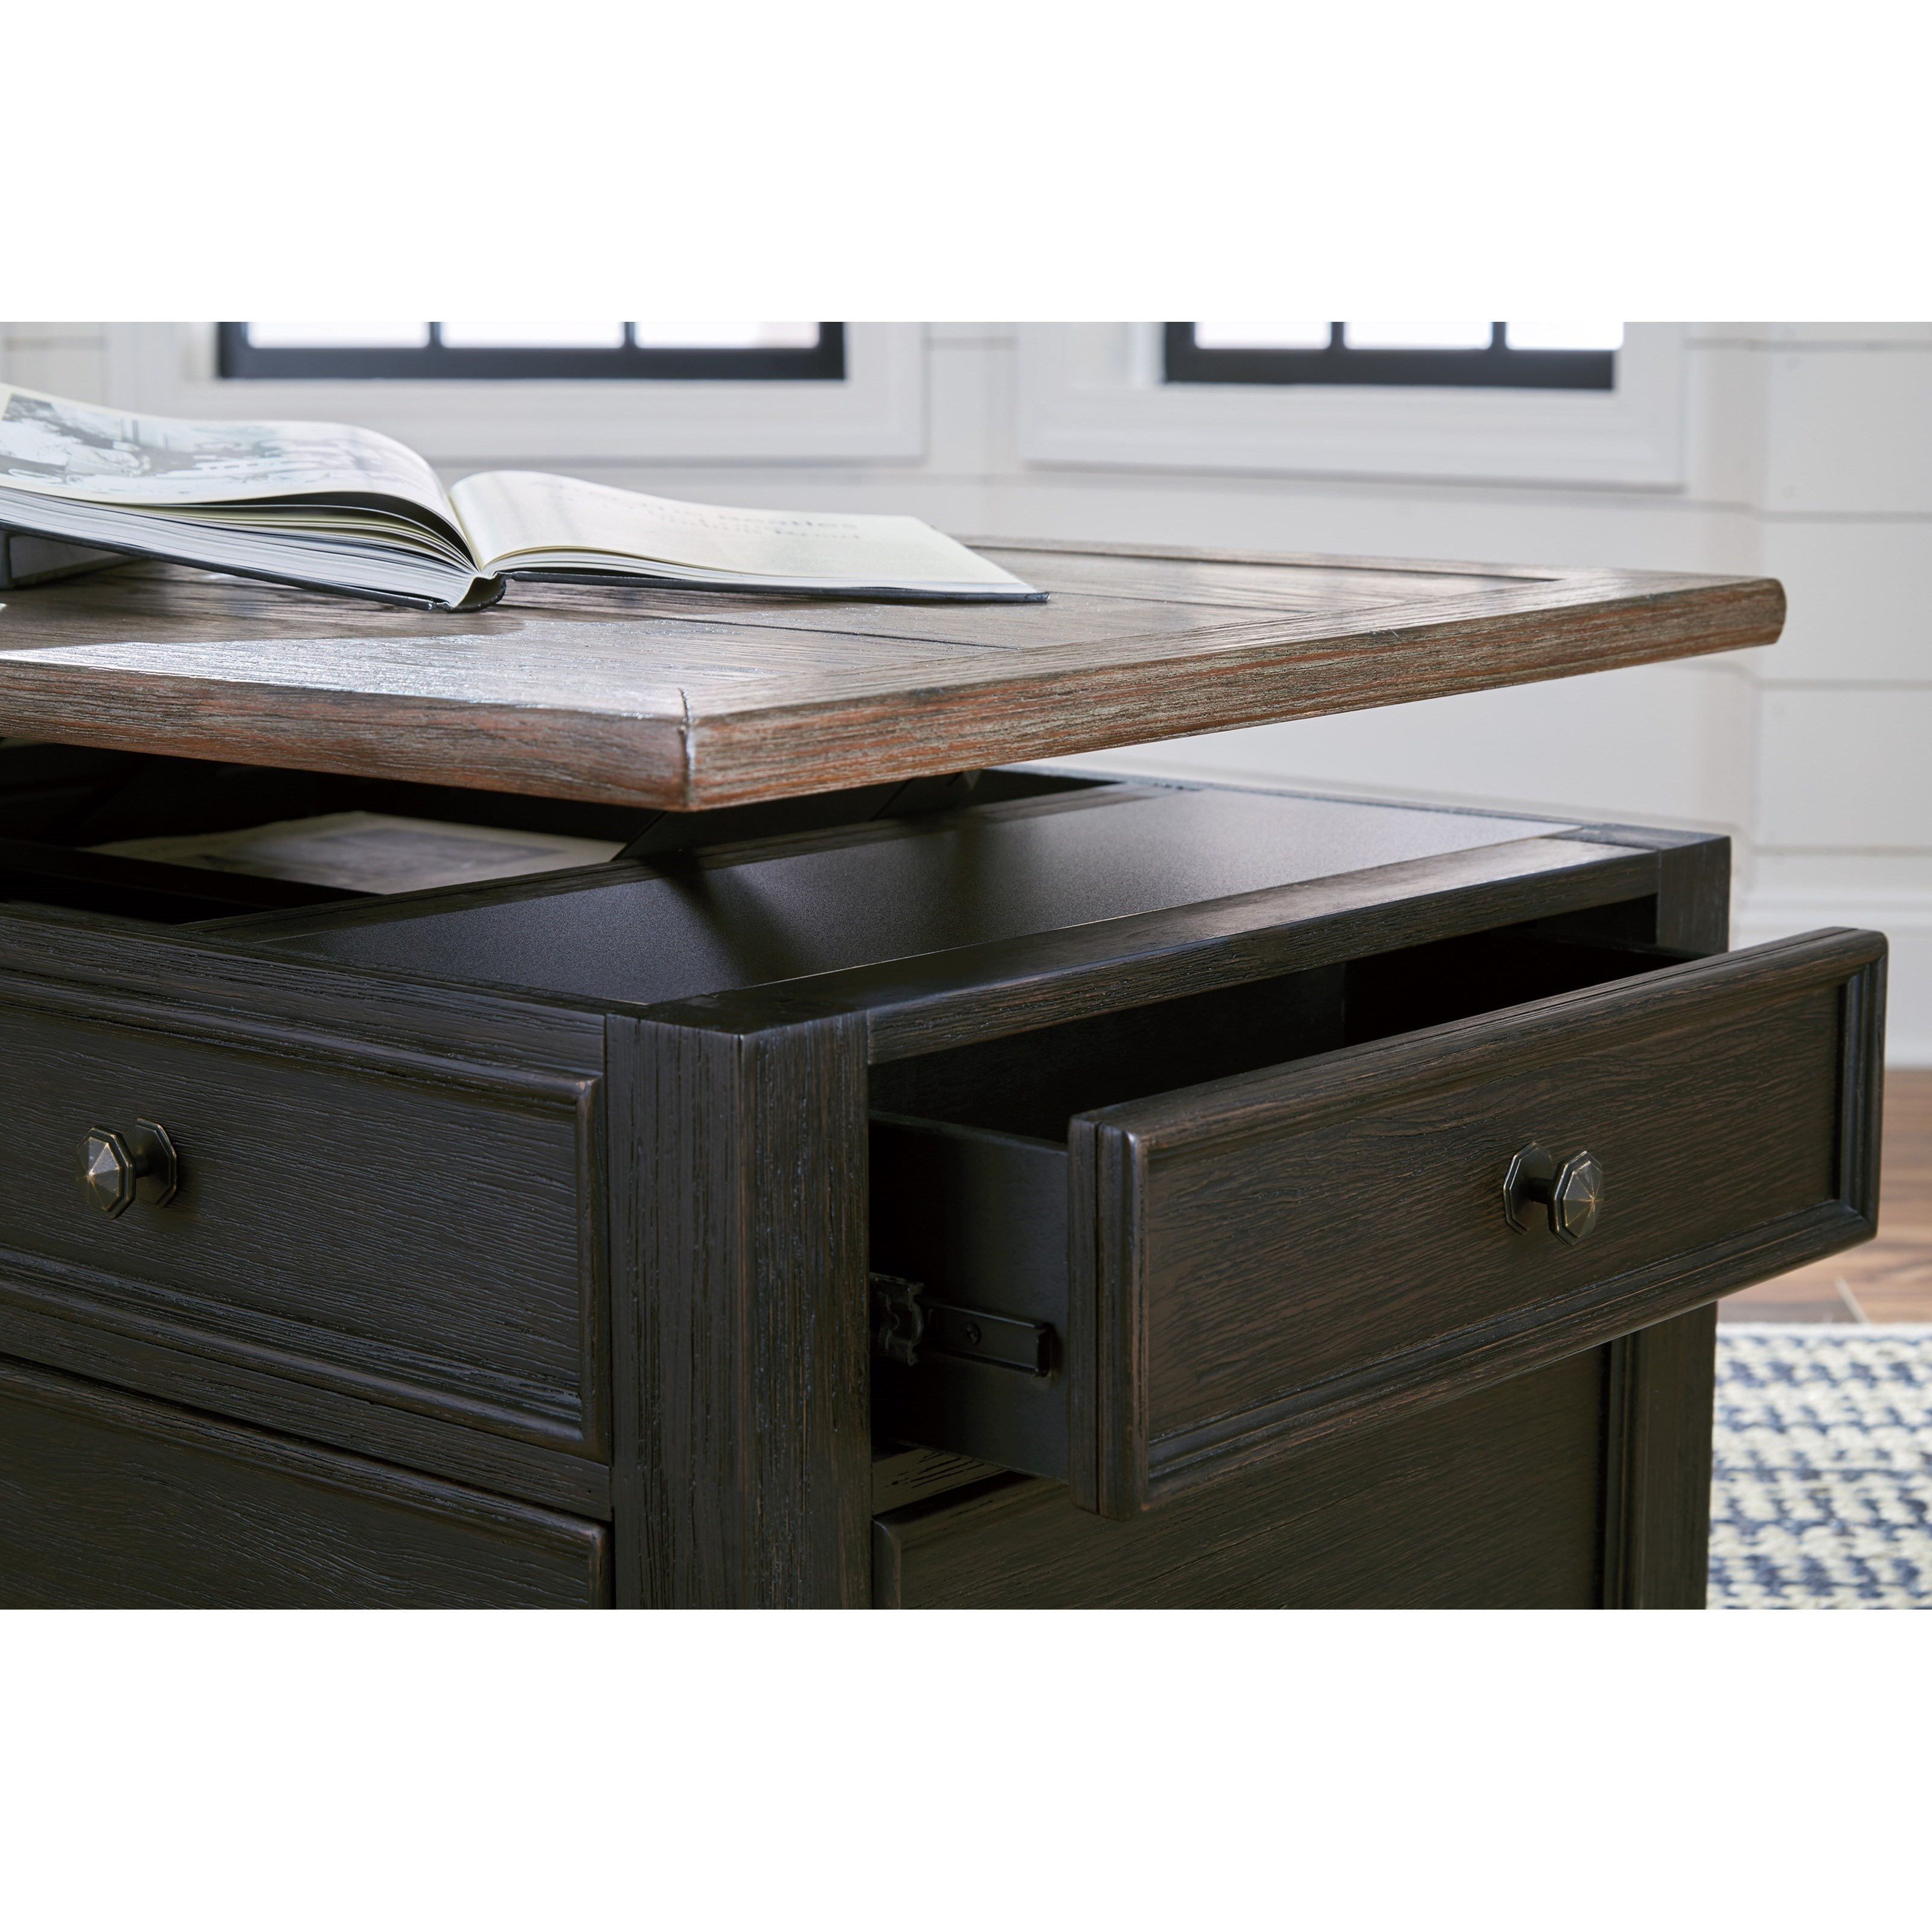 Signature Design By Ashley Tyler Creek Lift Top Cocktail Table With 4 Drawers Royal Furniture